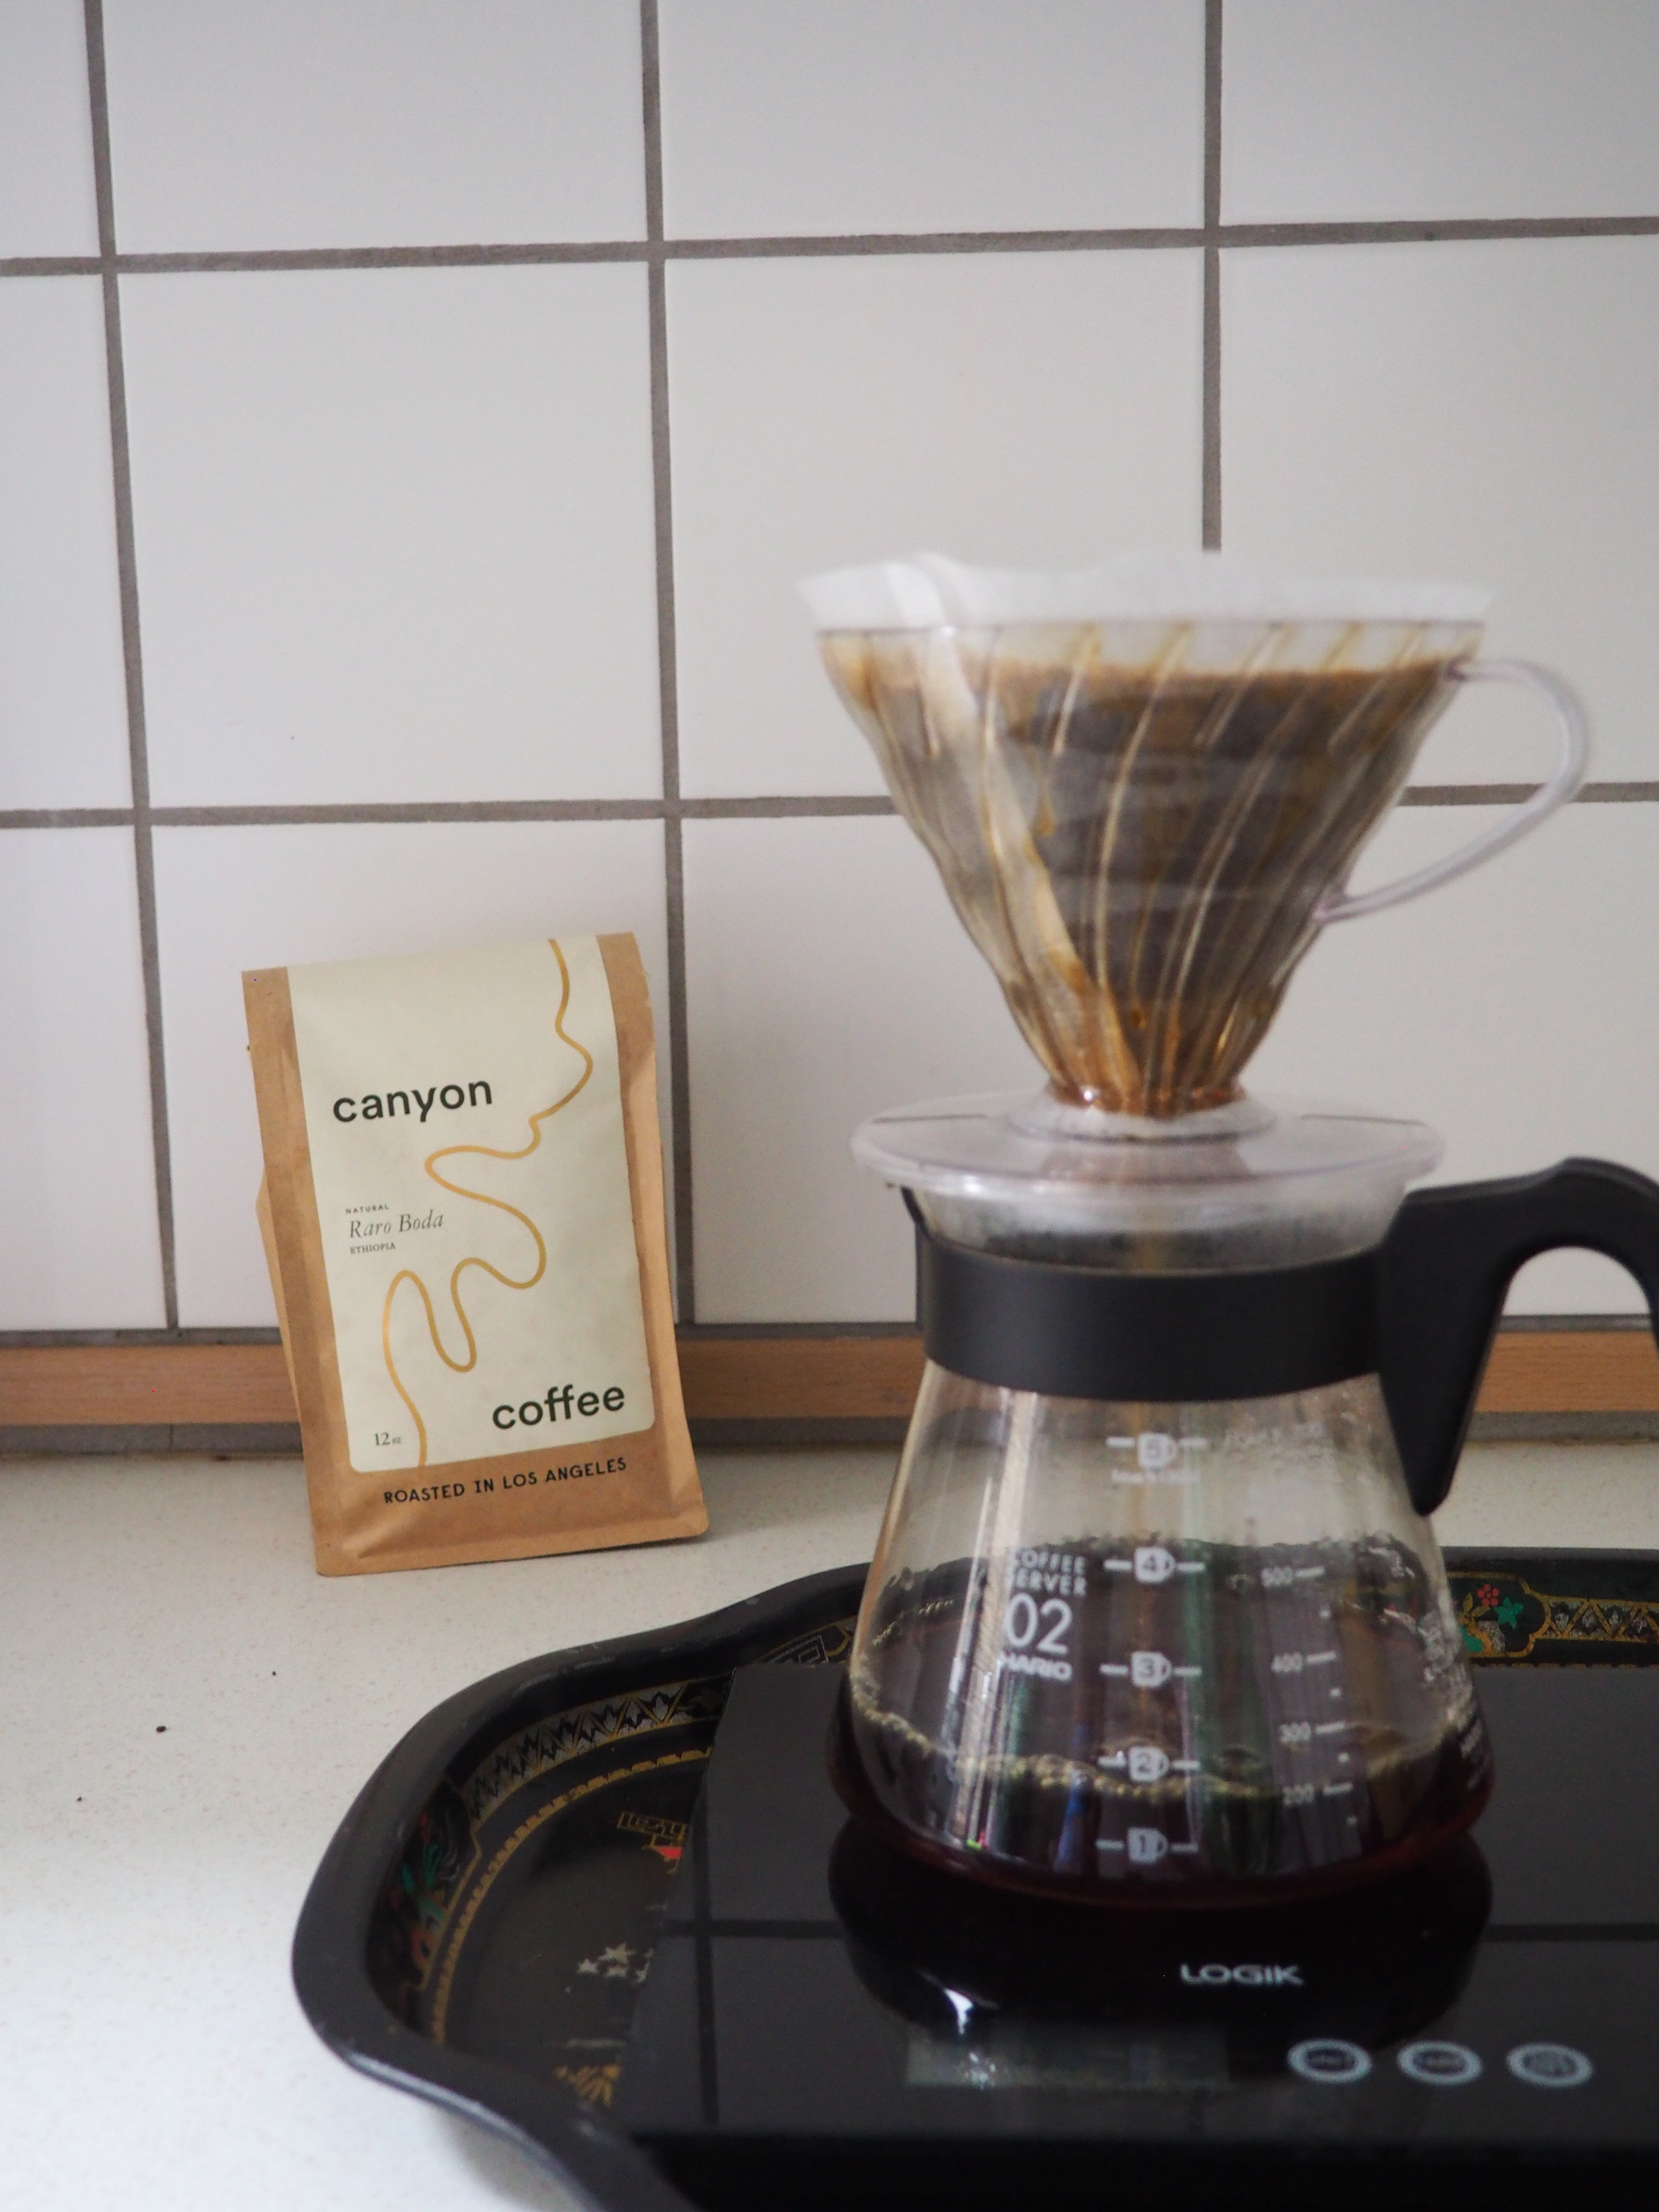 V60 Pour over made with Canyon Coffee